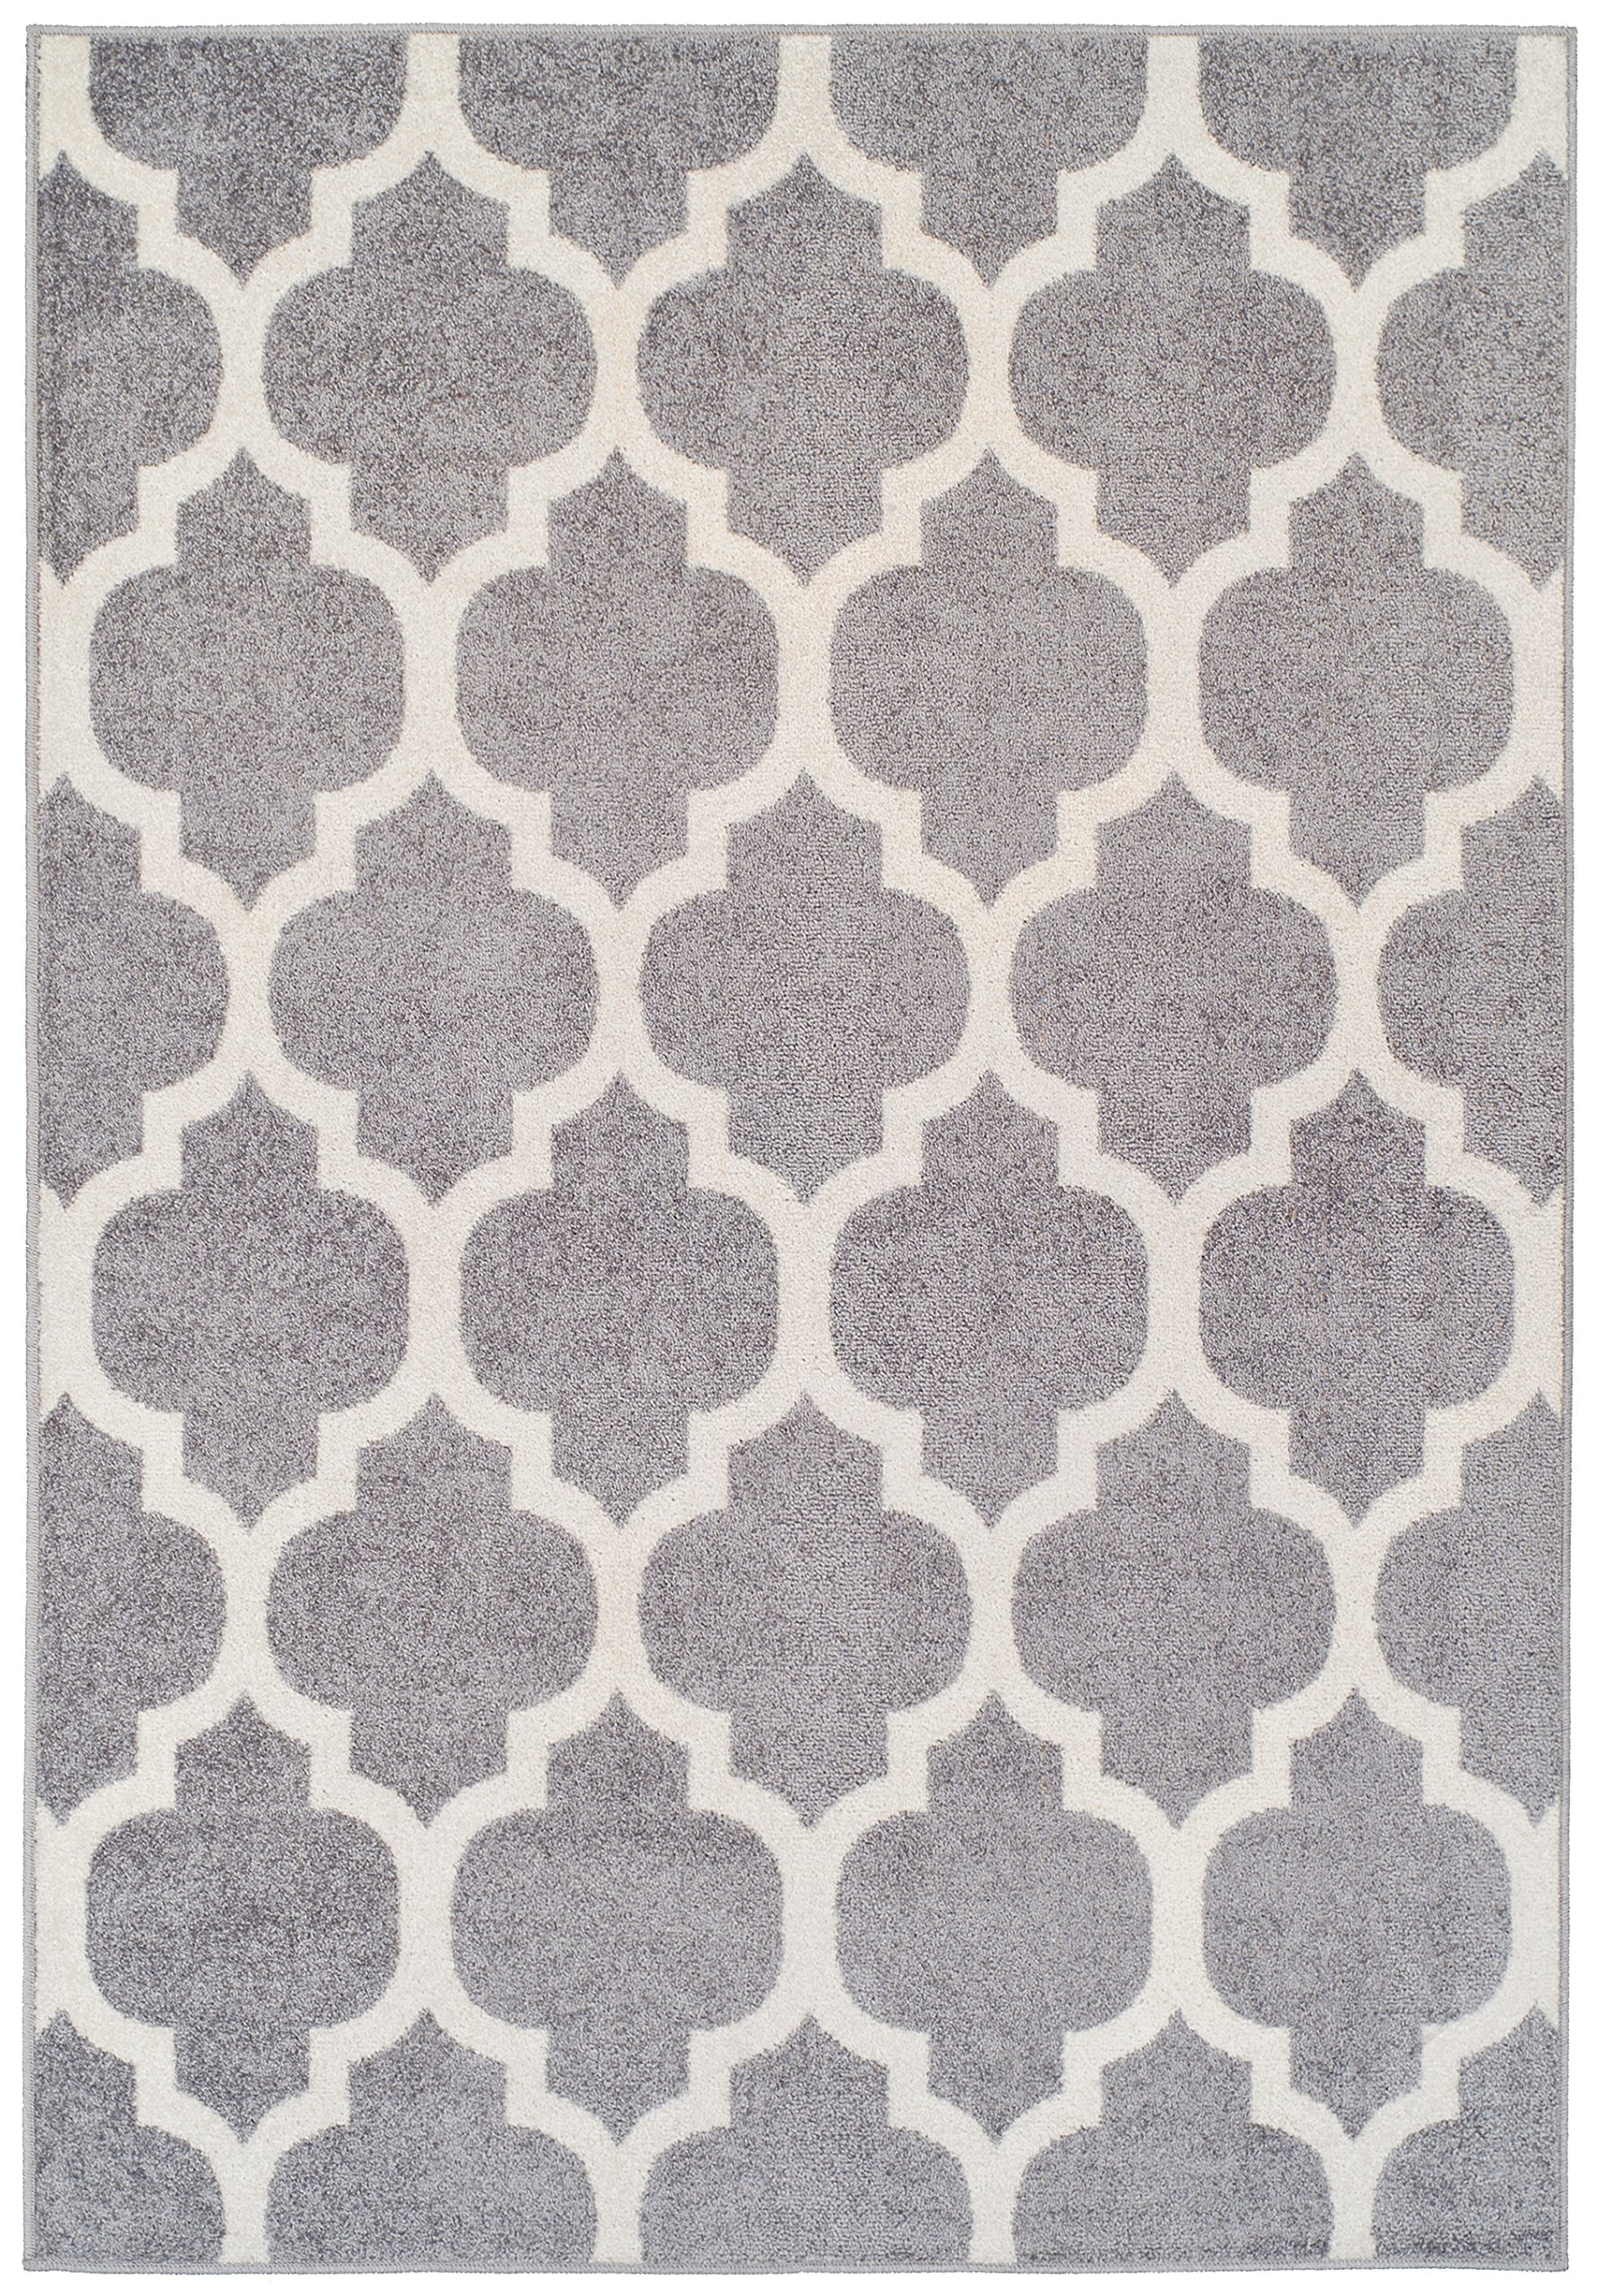 A.S Quality Rugs Large Area Rugs for Living Room 8x10 Gray Rug For Dining Room 8x11 Clearance Rugs Prime by A.S Quality Rugs